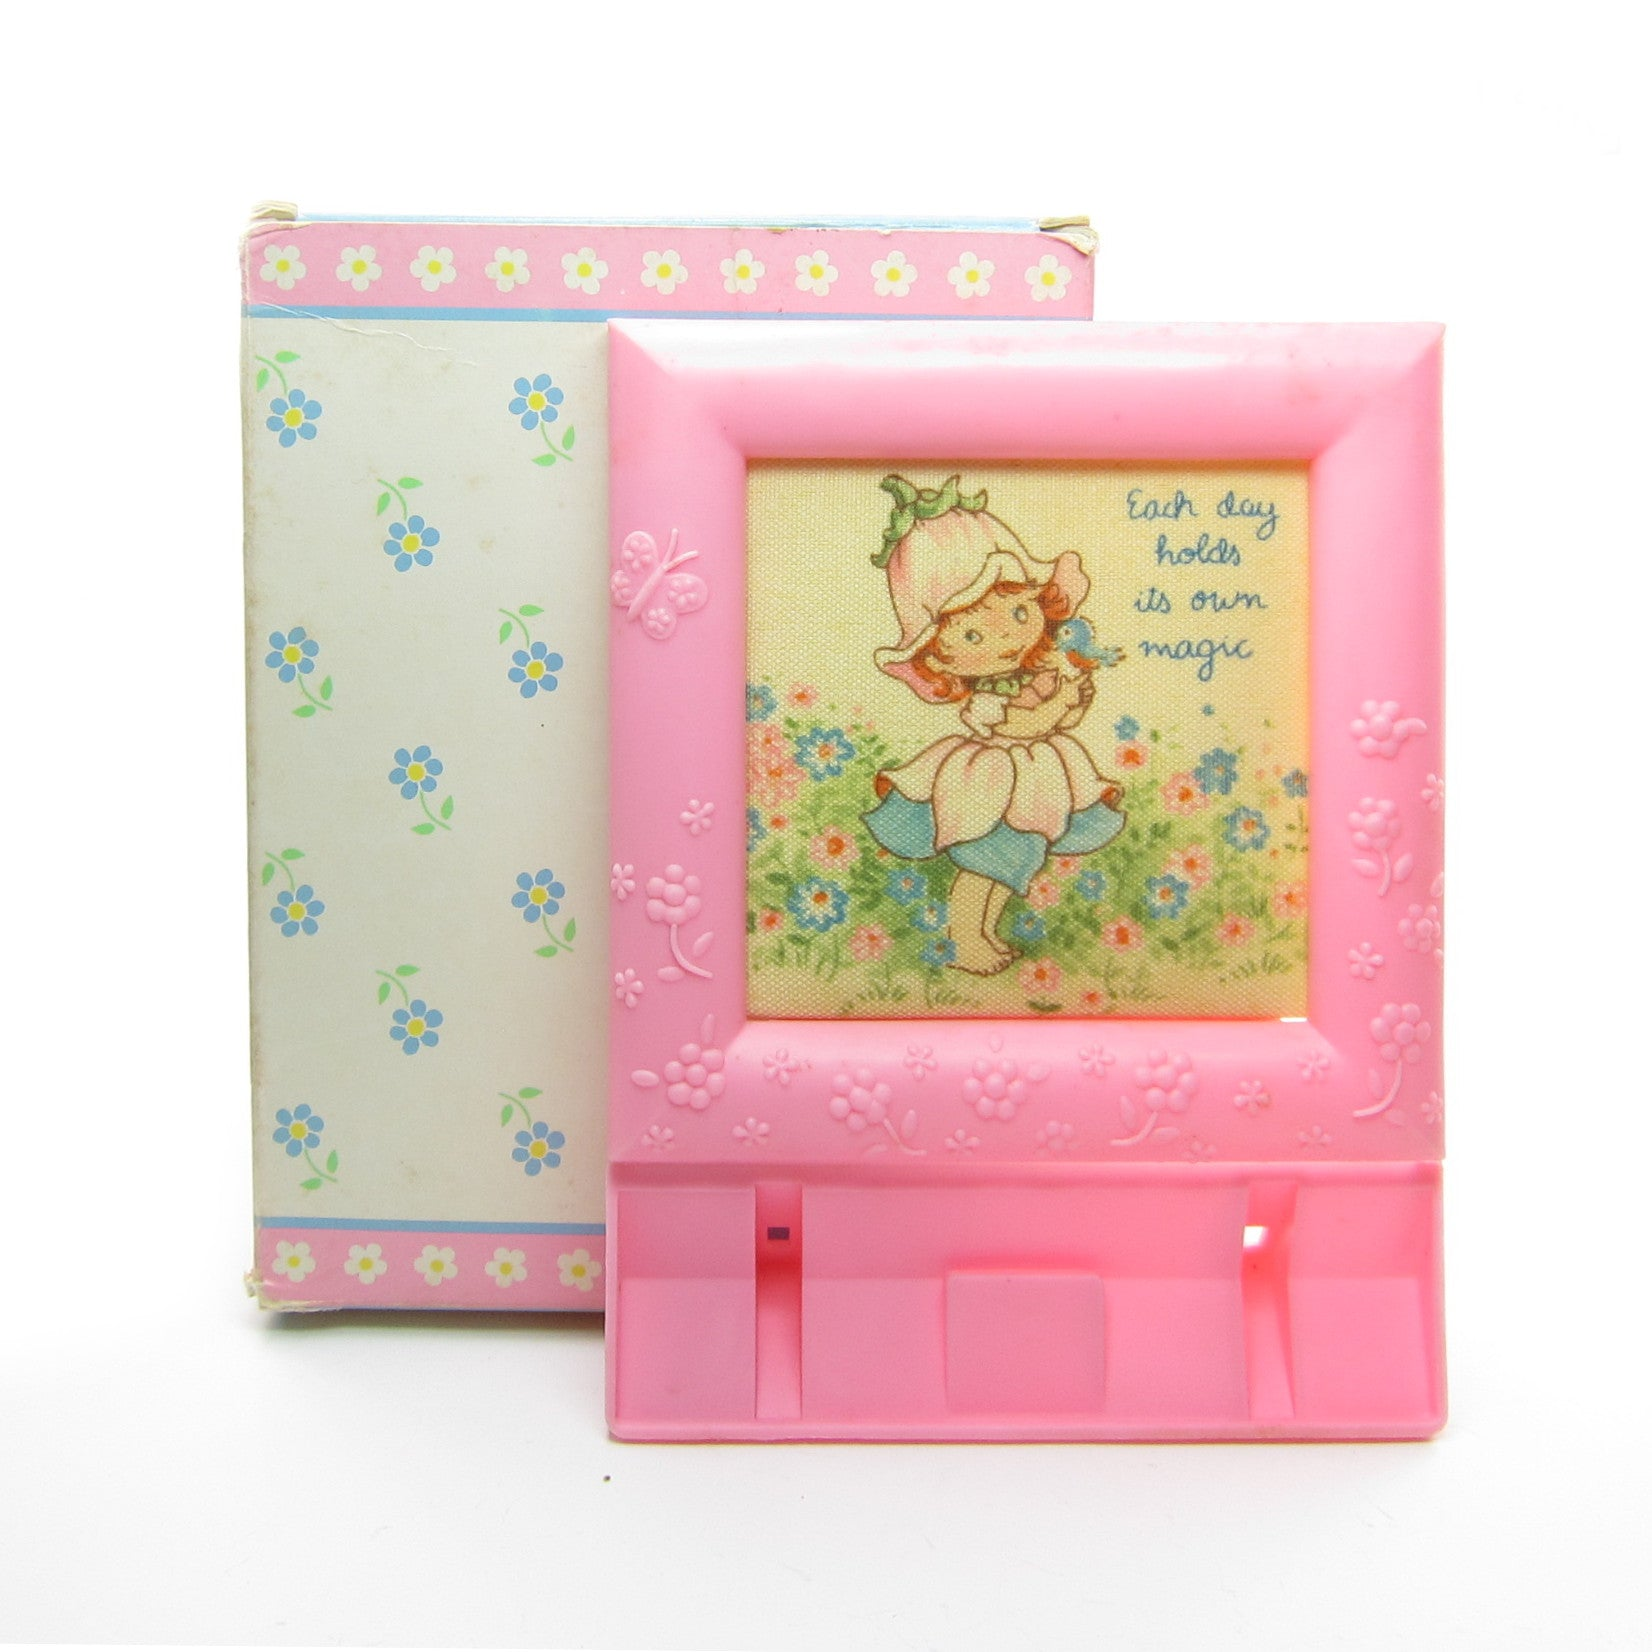 Avon Little Blossom scented picture frame